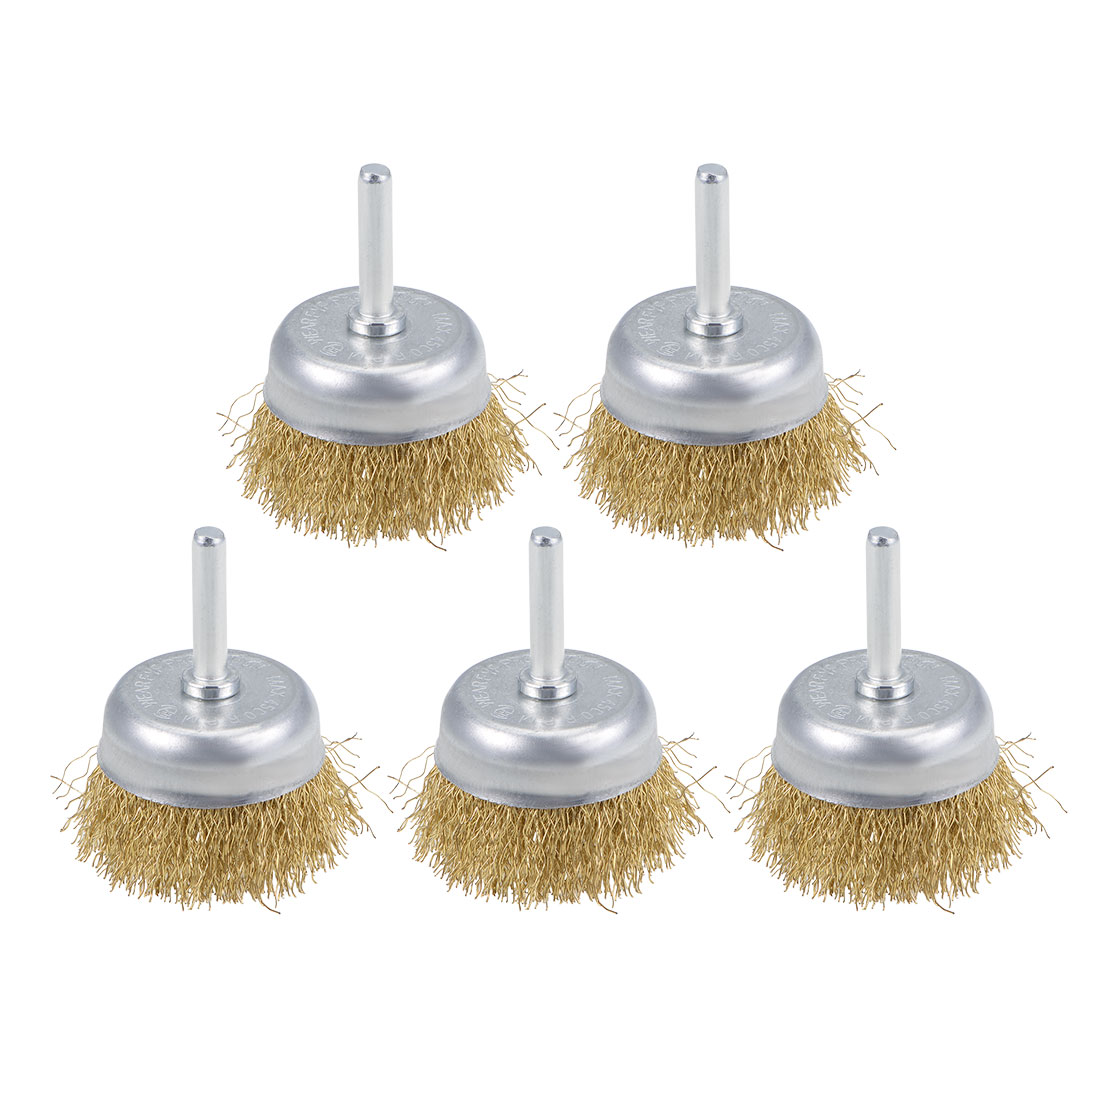 2-Inch Wire Cup Brush Brass Plated Crimped Steel with 1/4-inch Shank 5 Pcs